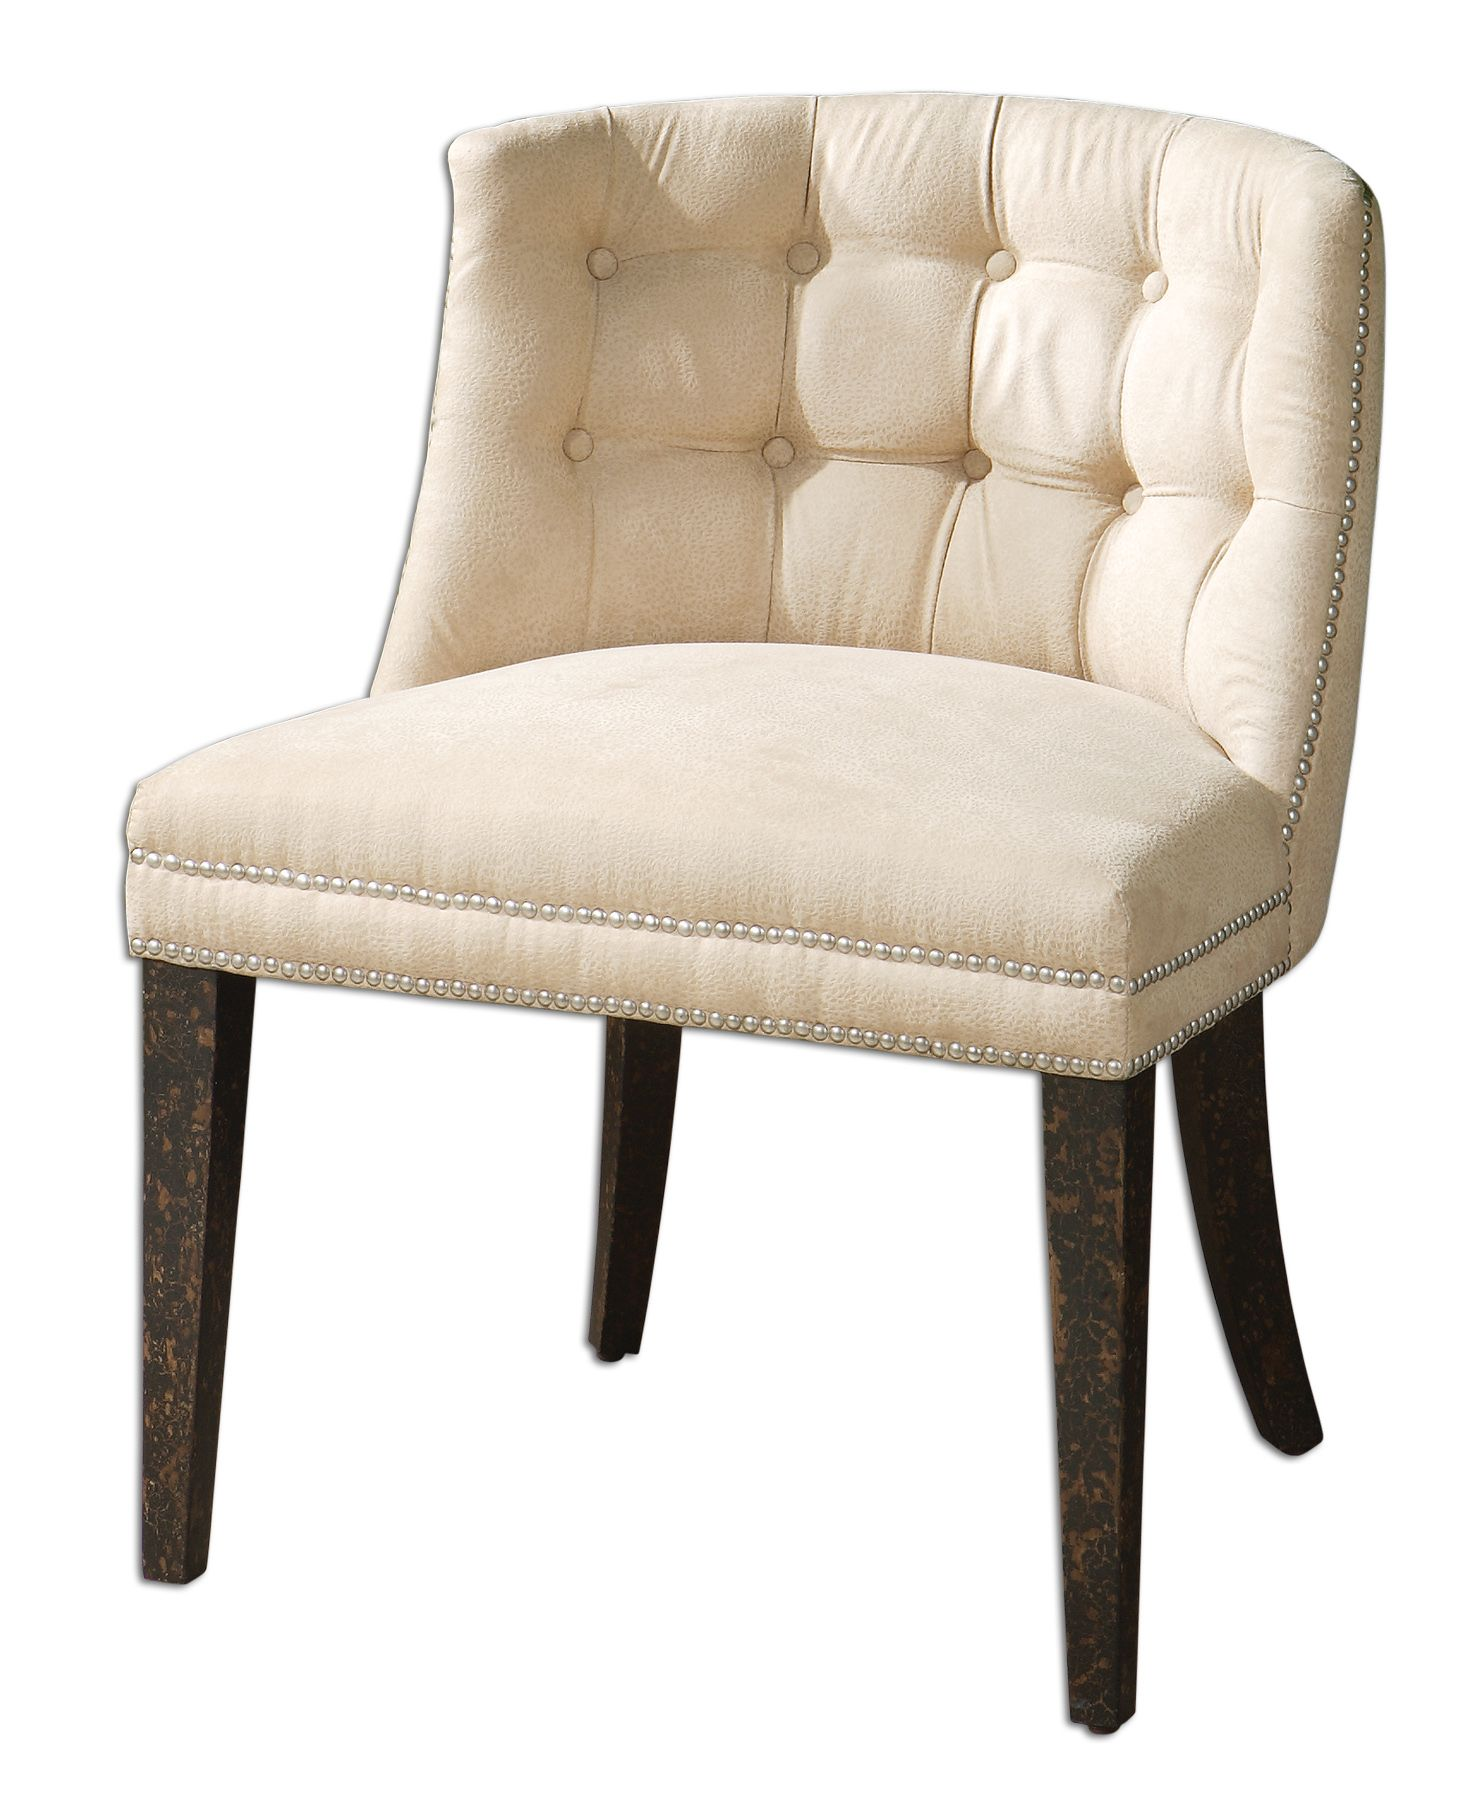 Uttermost 23049 Trixie Tufted Slipper Chair